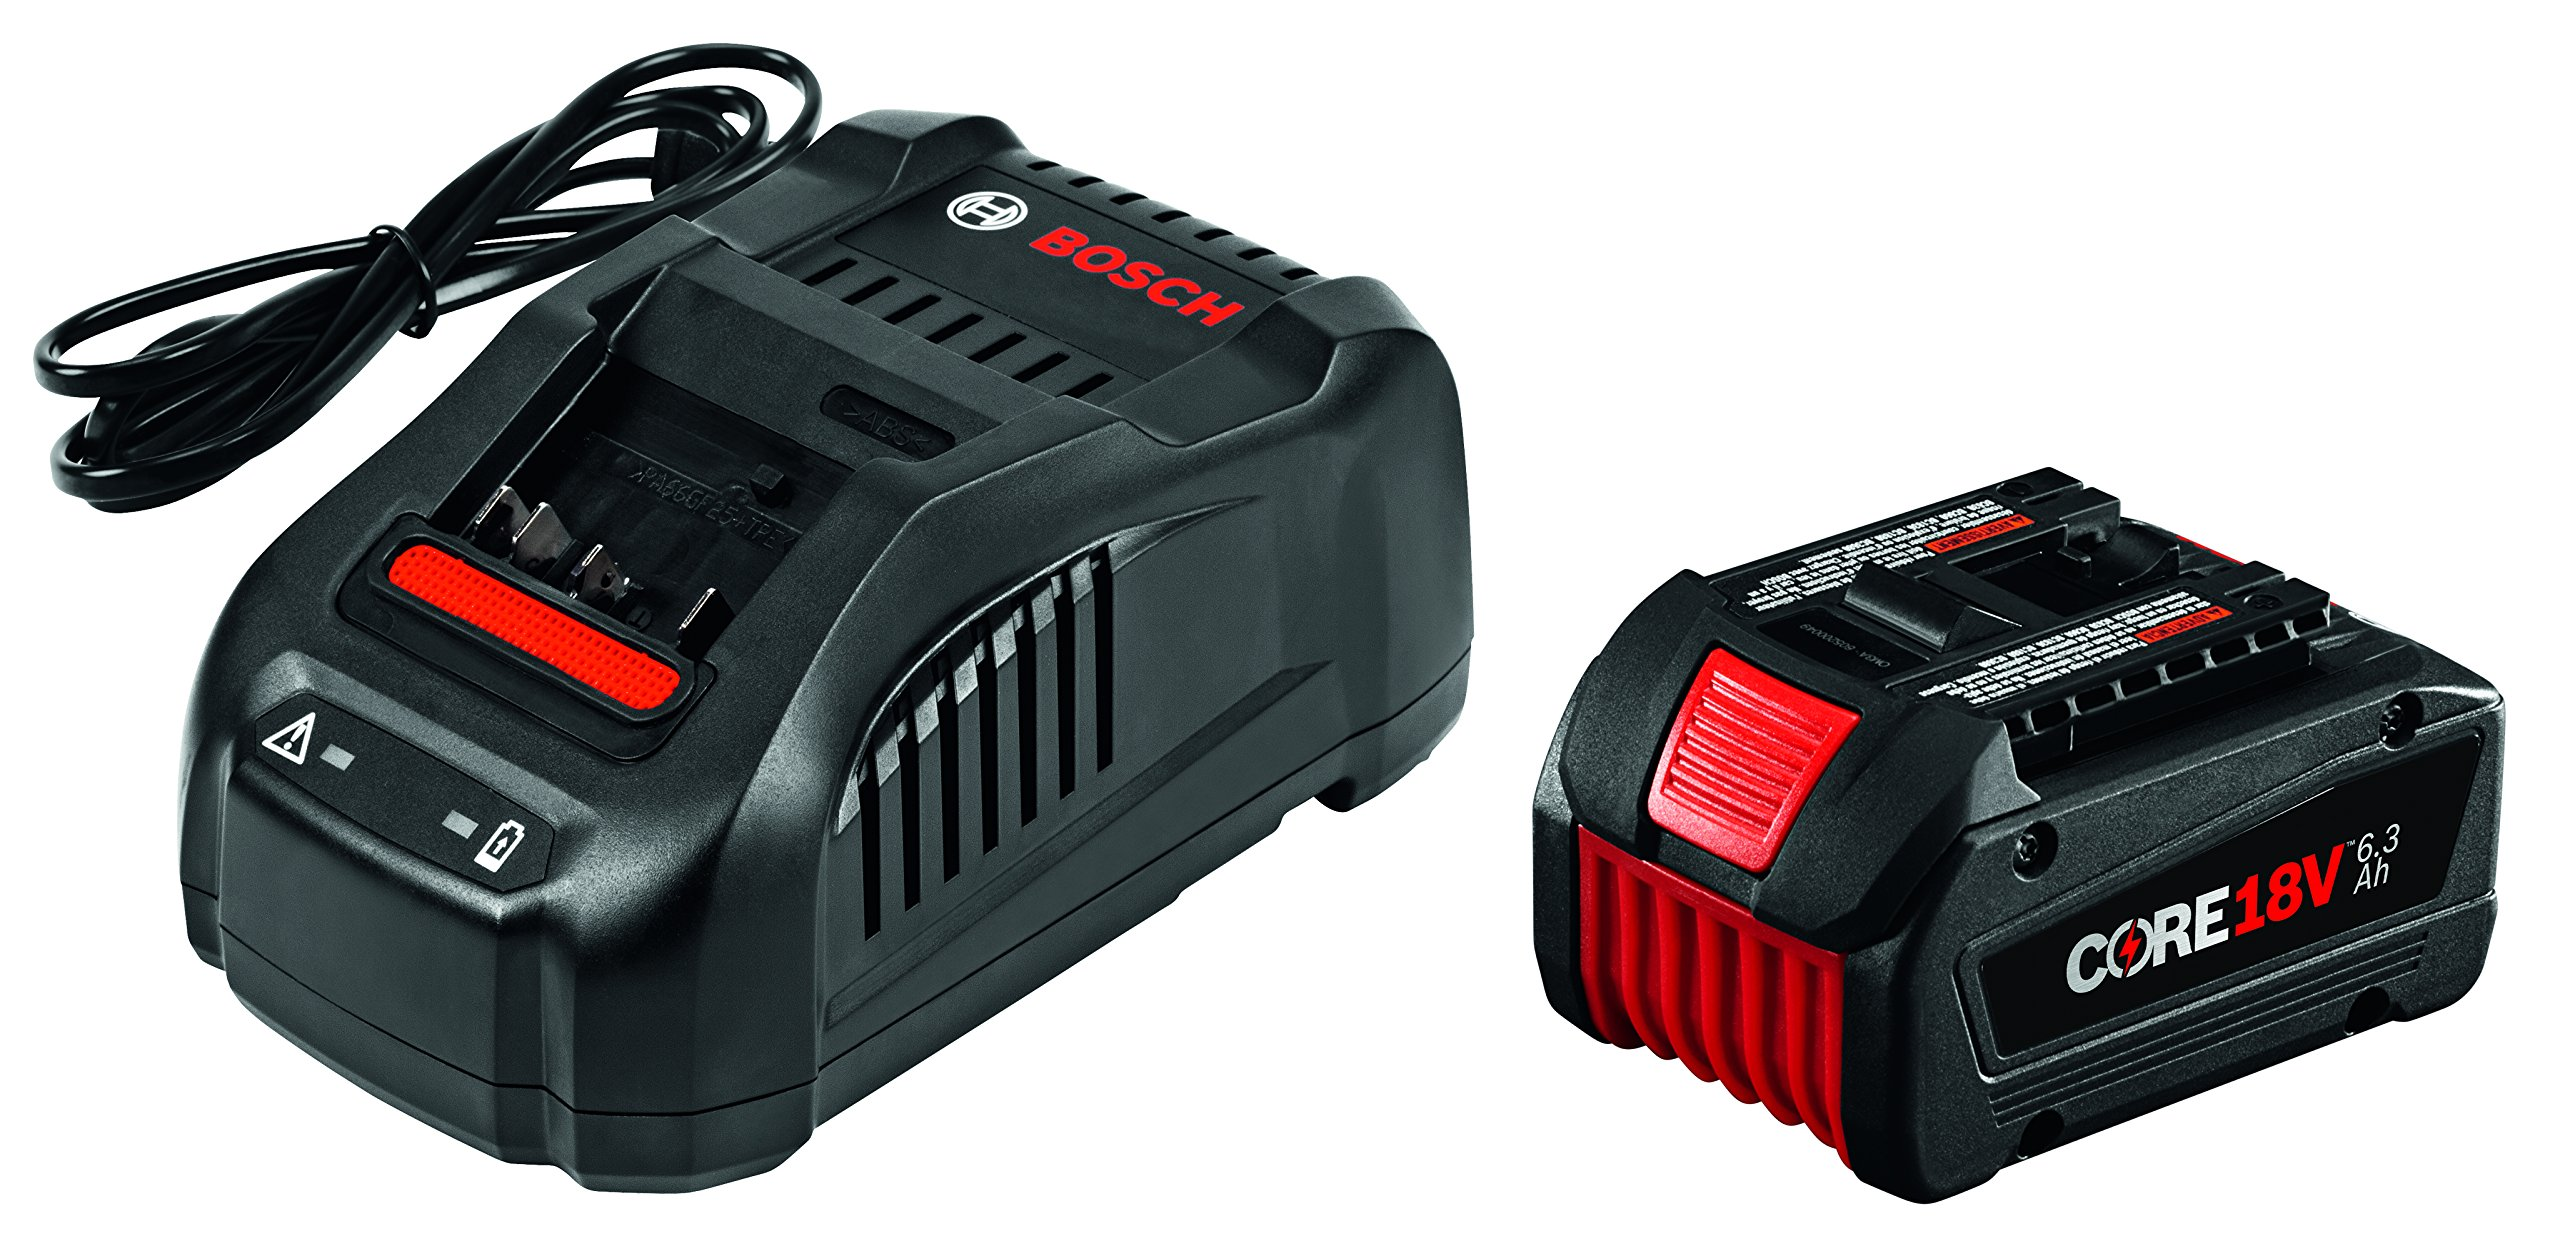 Bosch 18V Starter Kit with CORE18V Battery and Charger GXS18V-01N14 by Bosch